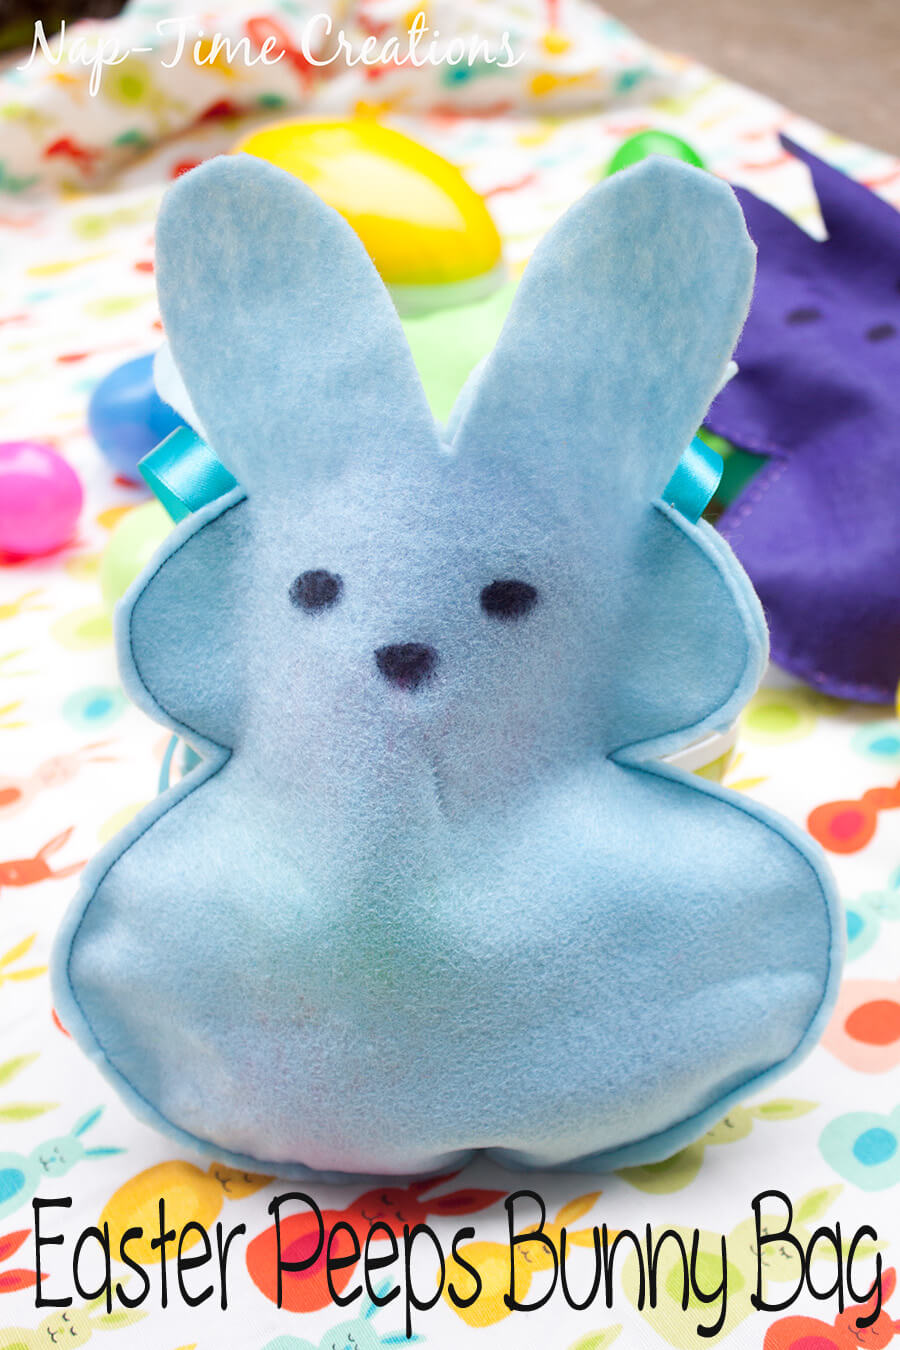 Easter Peeps Bunny Bags felt treat bags with free template from Life Sew Savory